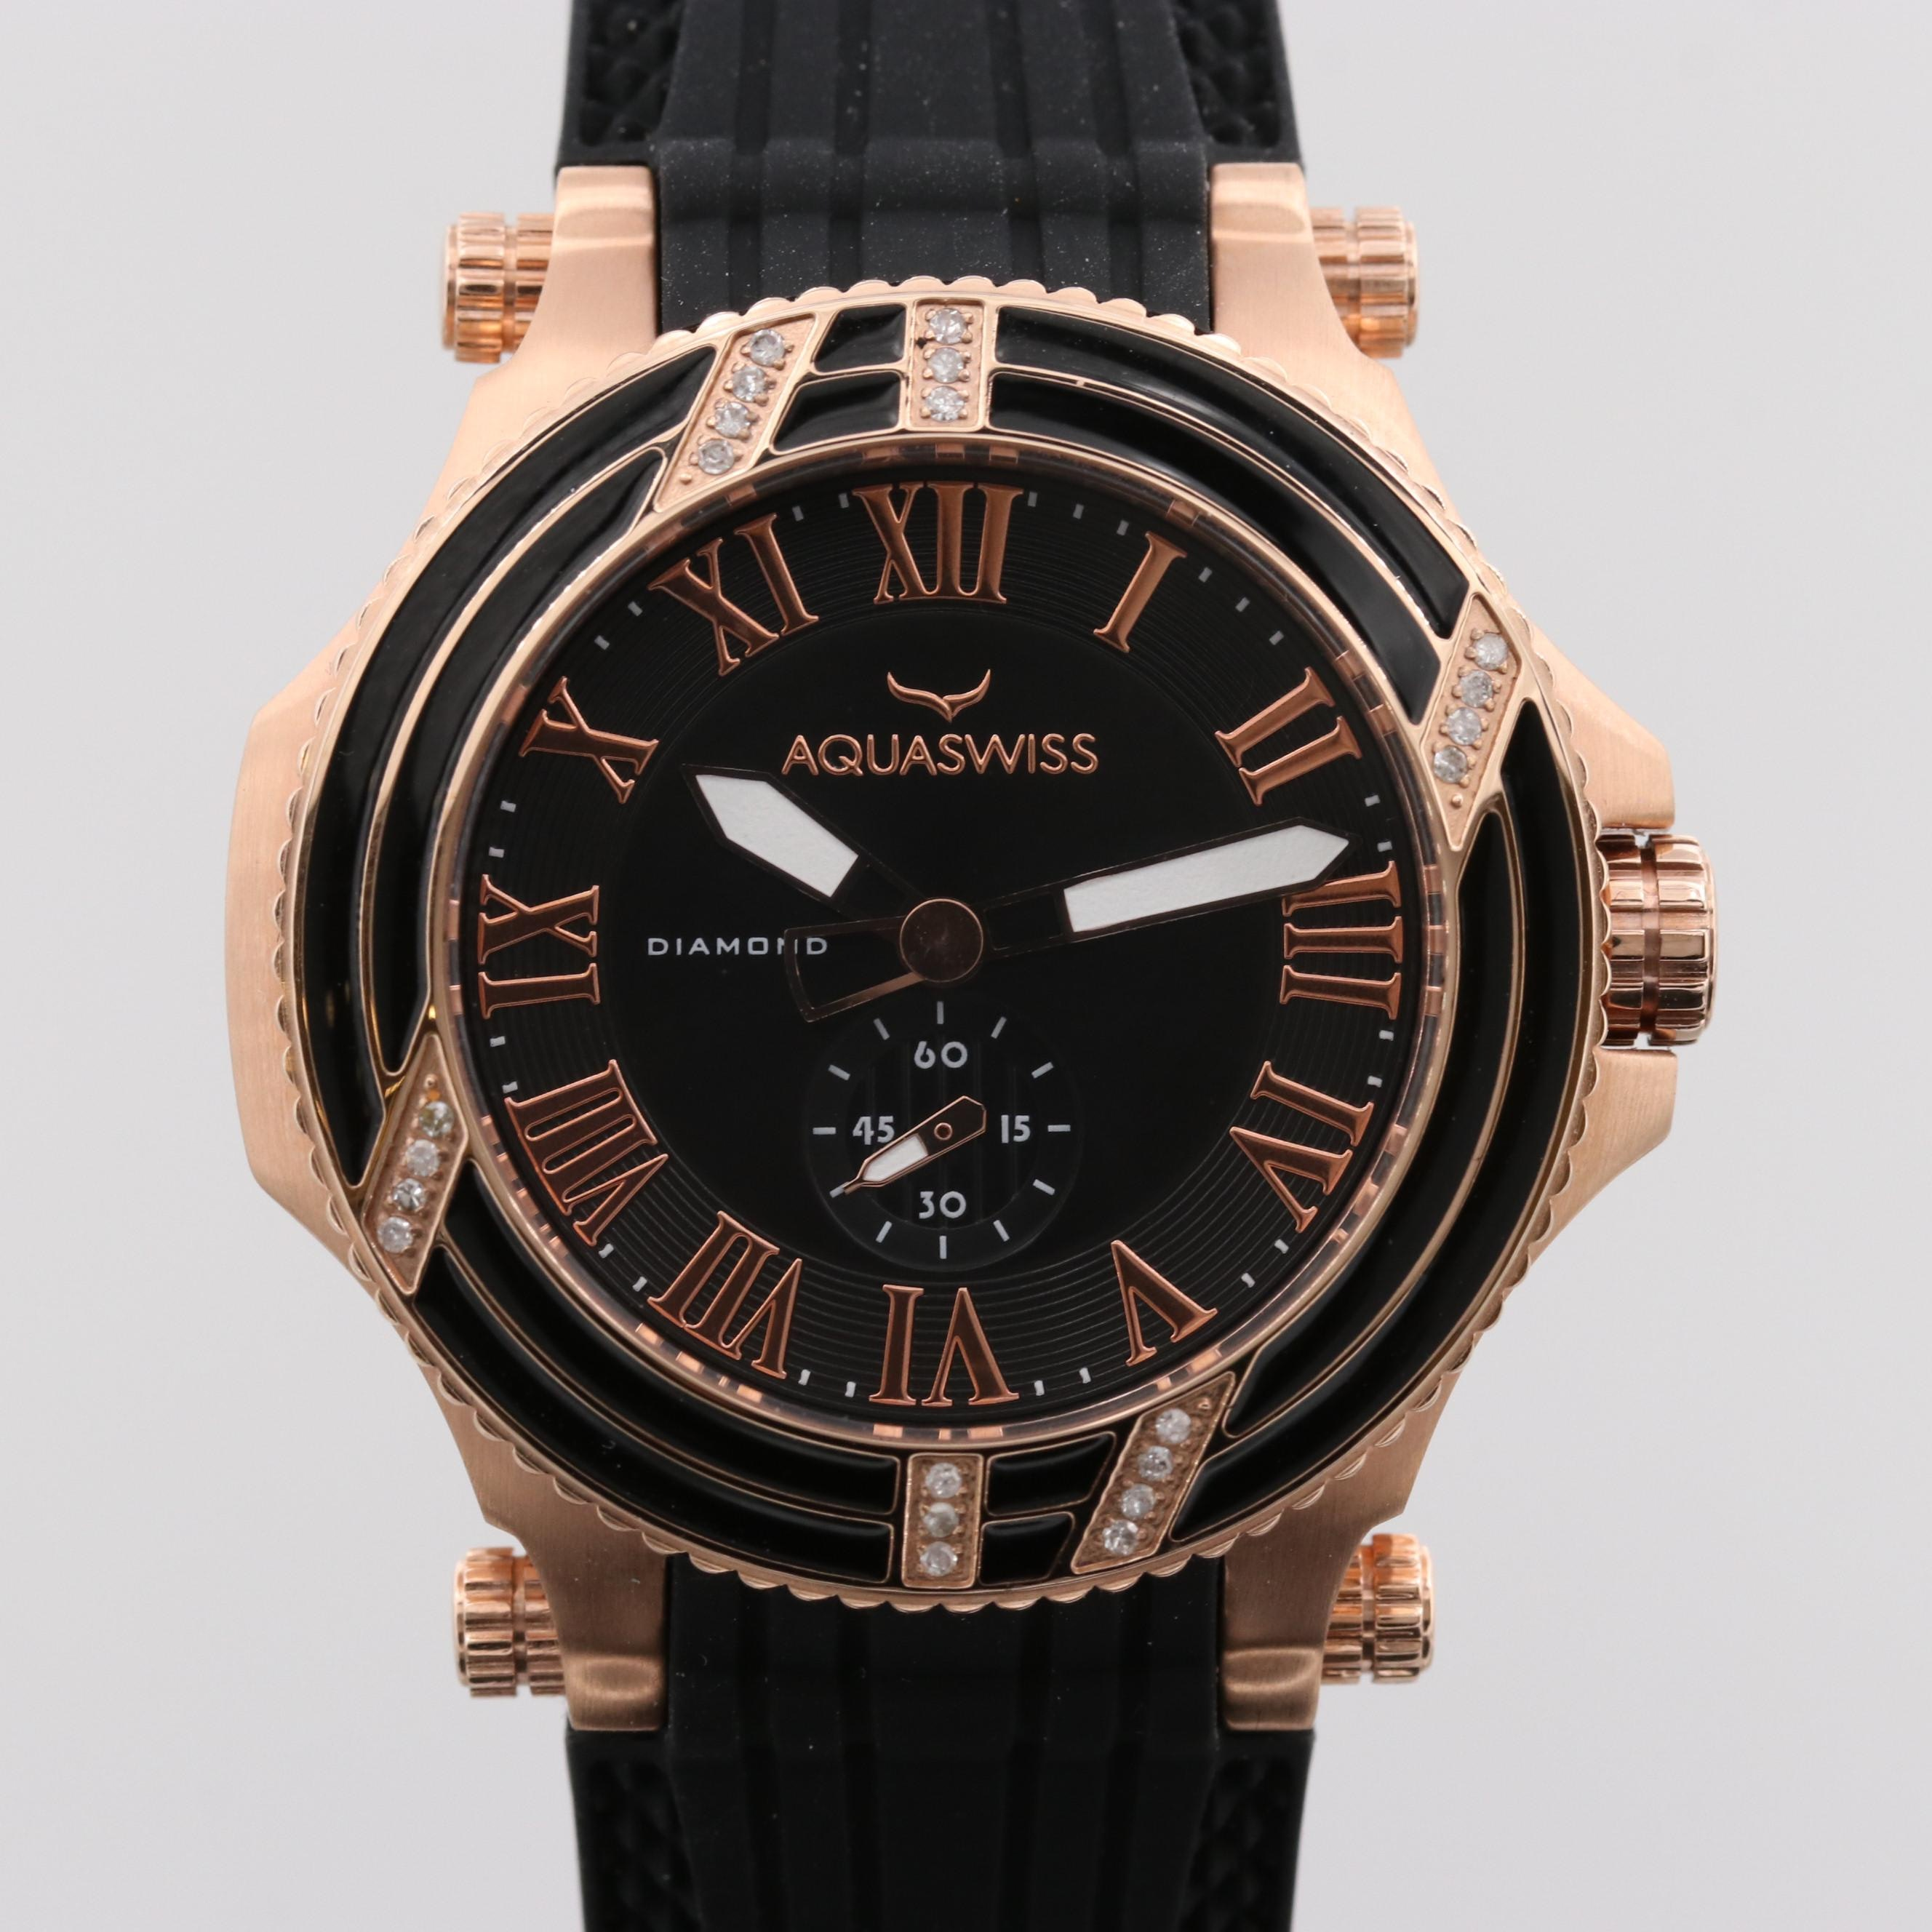 Aquaswiss Bolt L Rose Gold Tone Quartz Wristwatch With Diamond Bezel